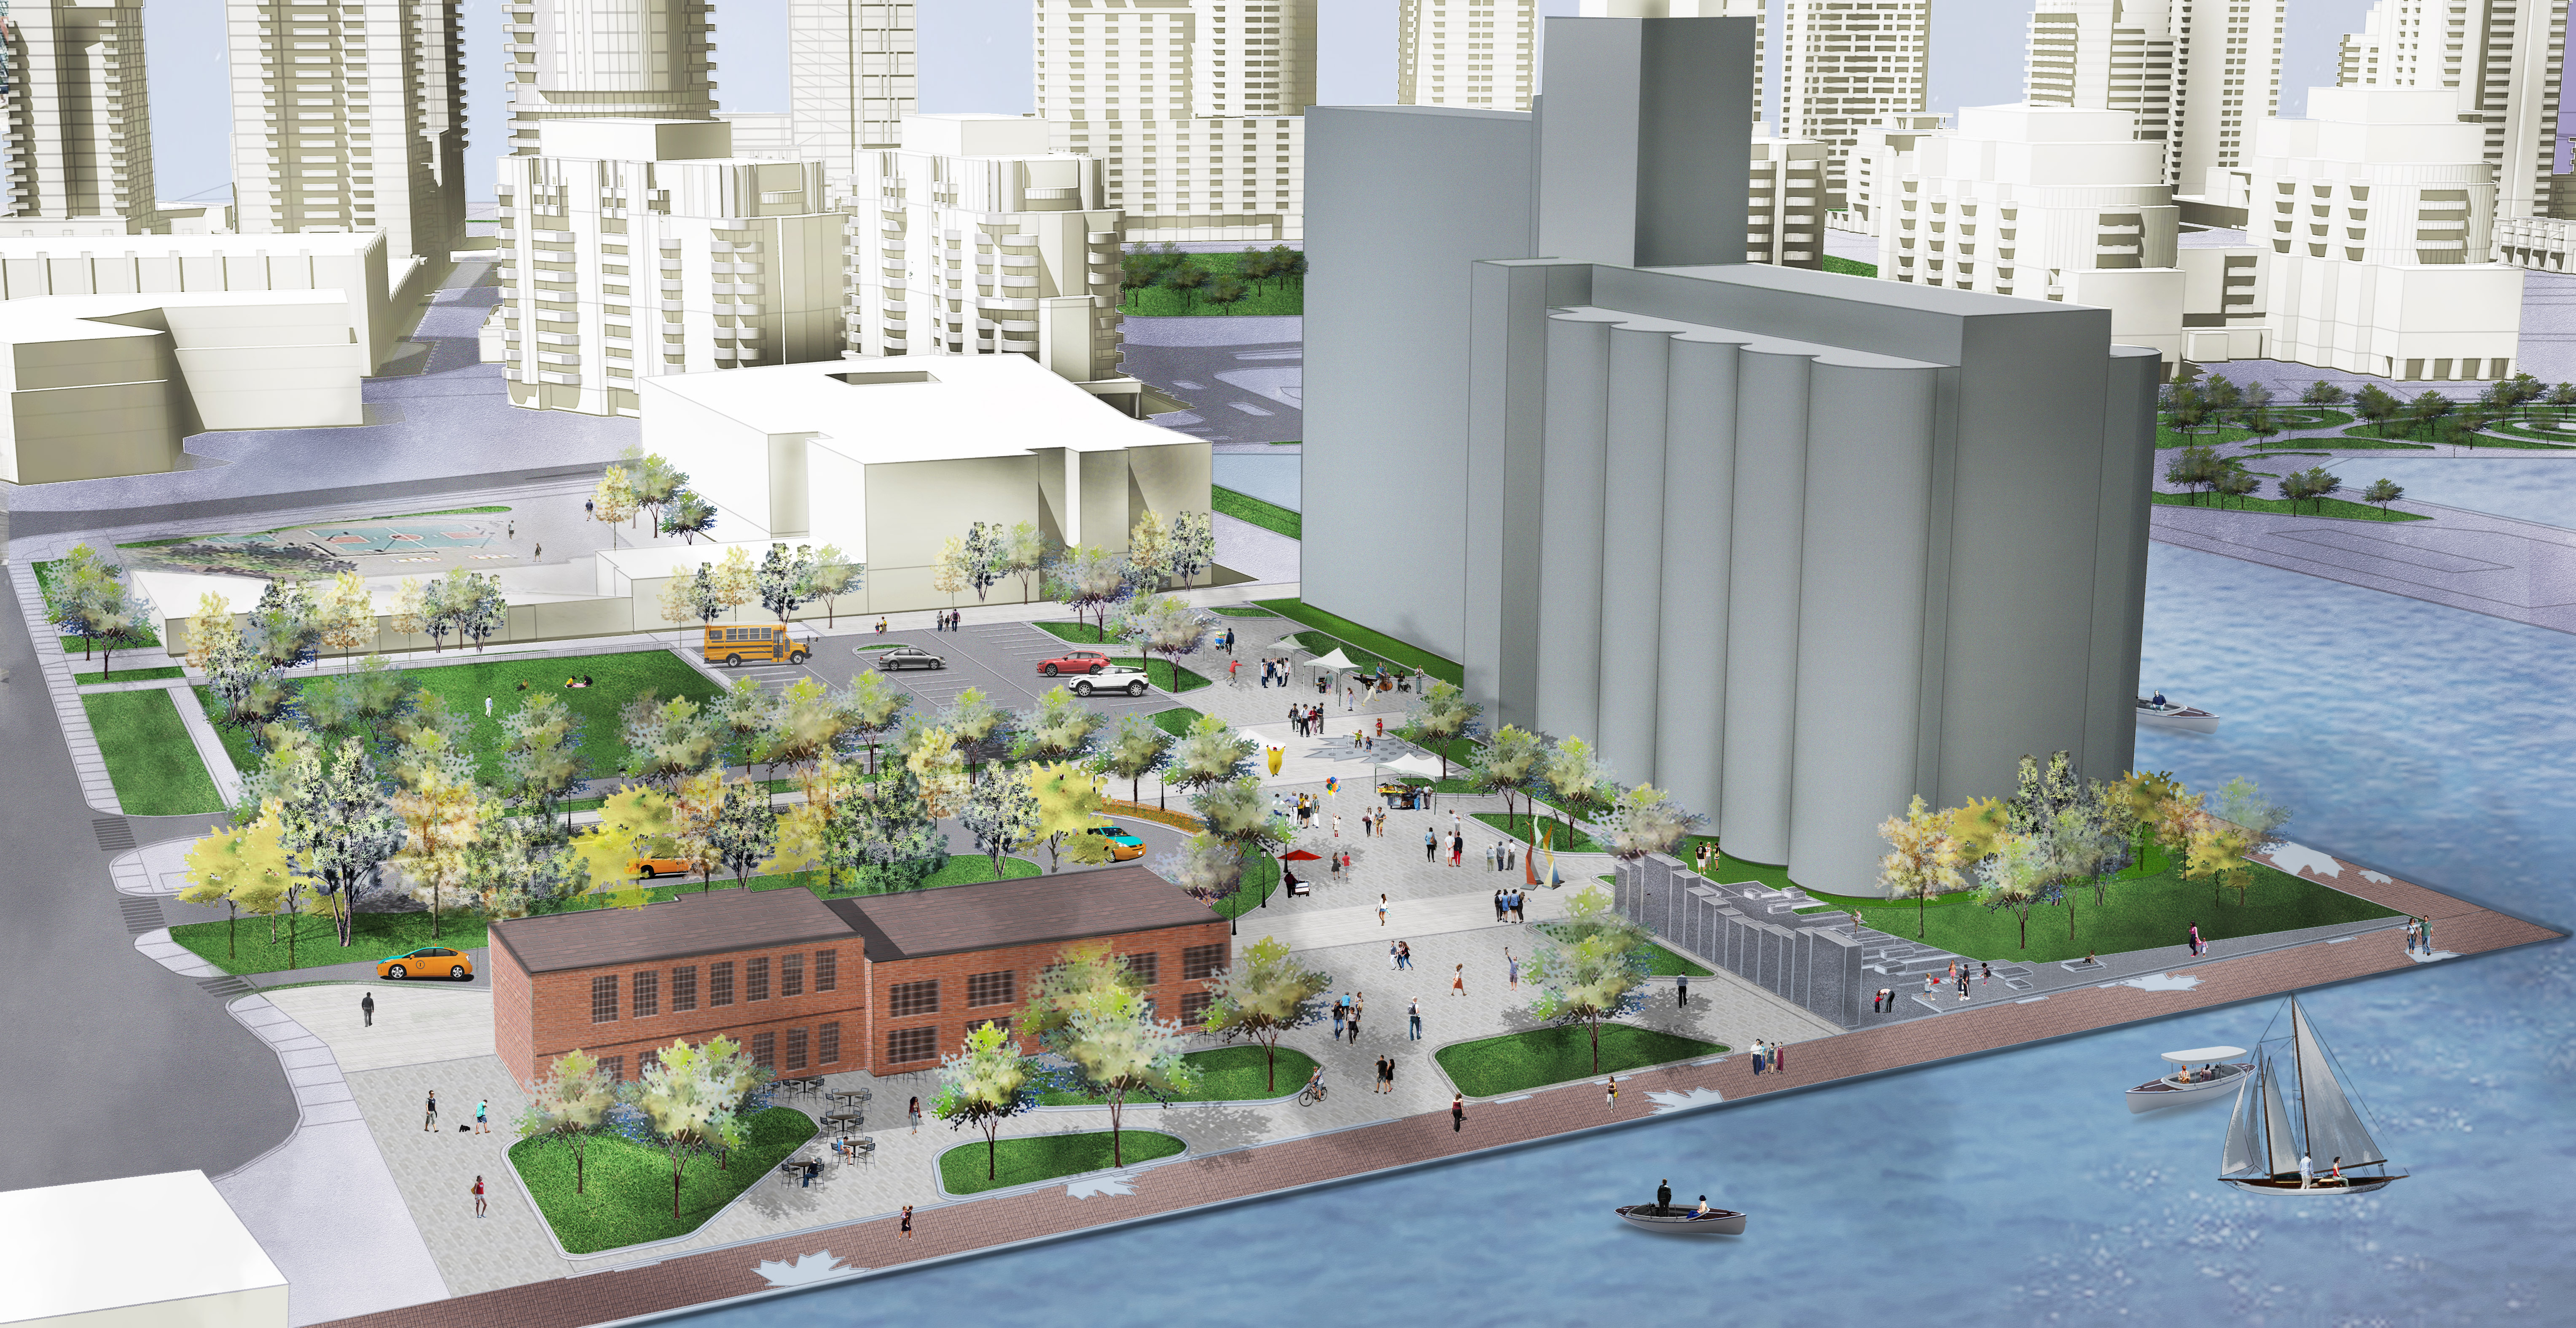 Artist's rendering depicts a bird's eye view of planned improvements to the Canada Malting property, which is currently a derelict site on Toronto's waterfront. The image includes restored historic buildings, a new public promenade along the water's edge, and people enjoying a new plaza space.